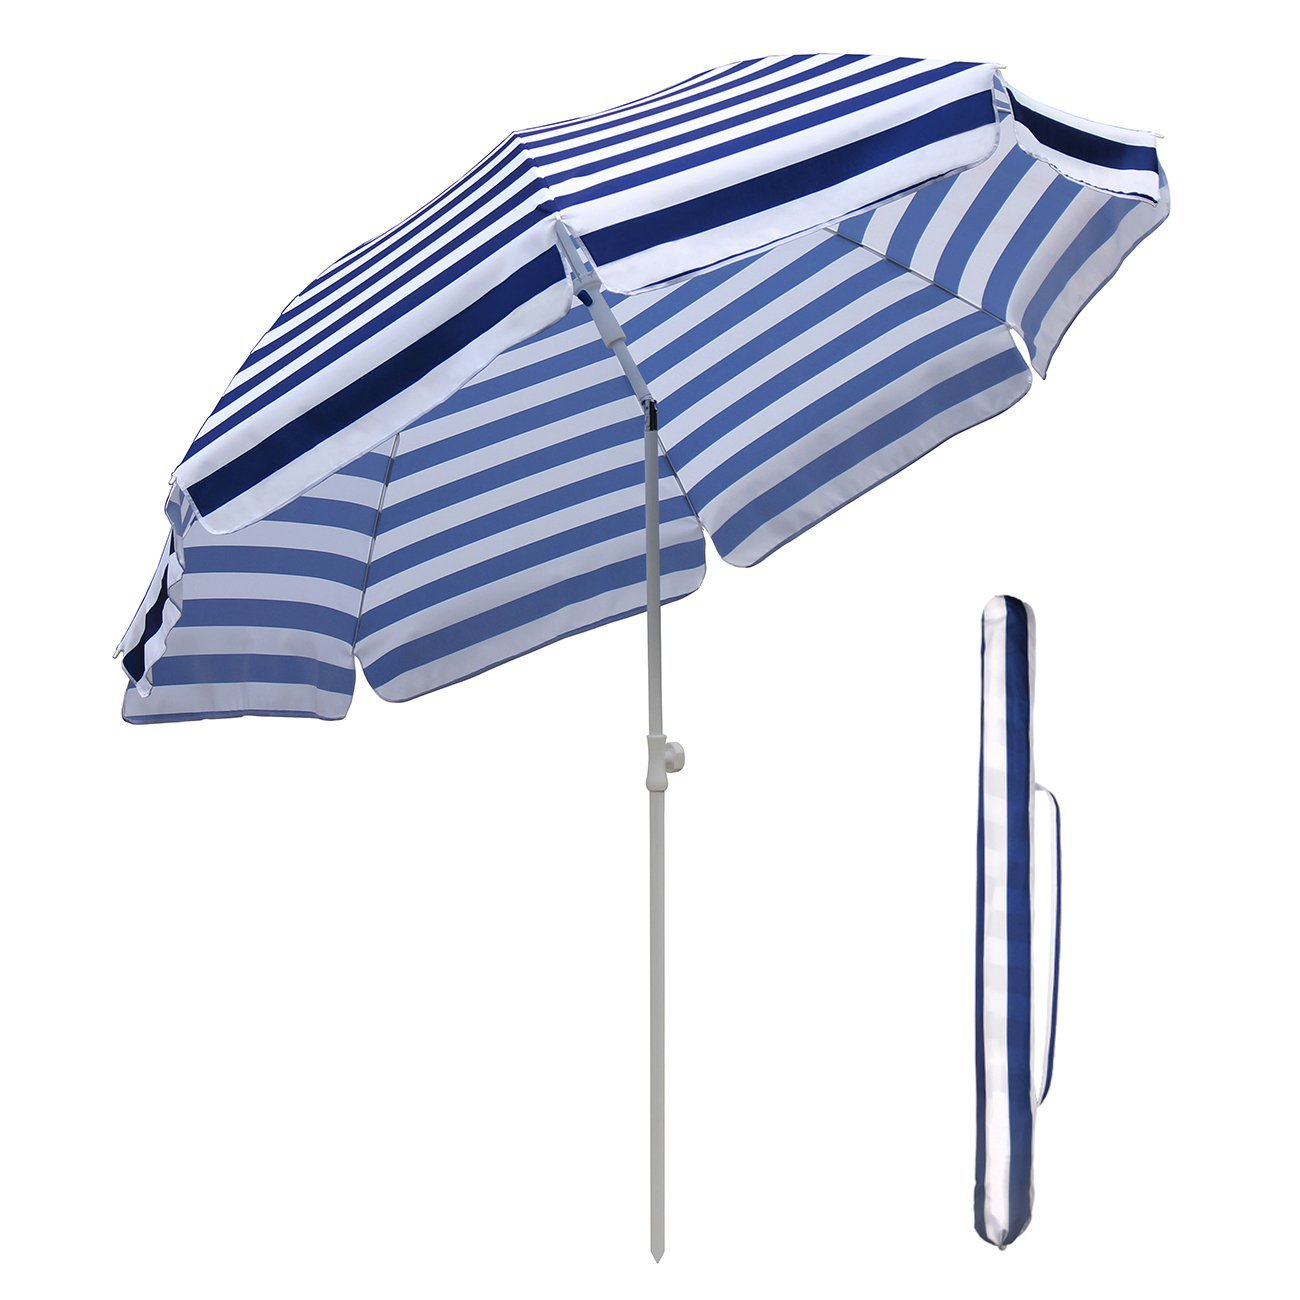 SekeyØ7ft beach umbrella blue white stripes outdoor umbrella blue white stripes outdoor patio umbrella outdoor market umbrella blue white stripes, with tilt and crank, round sunscreen UV25+